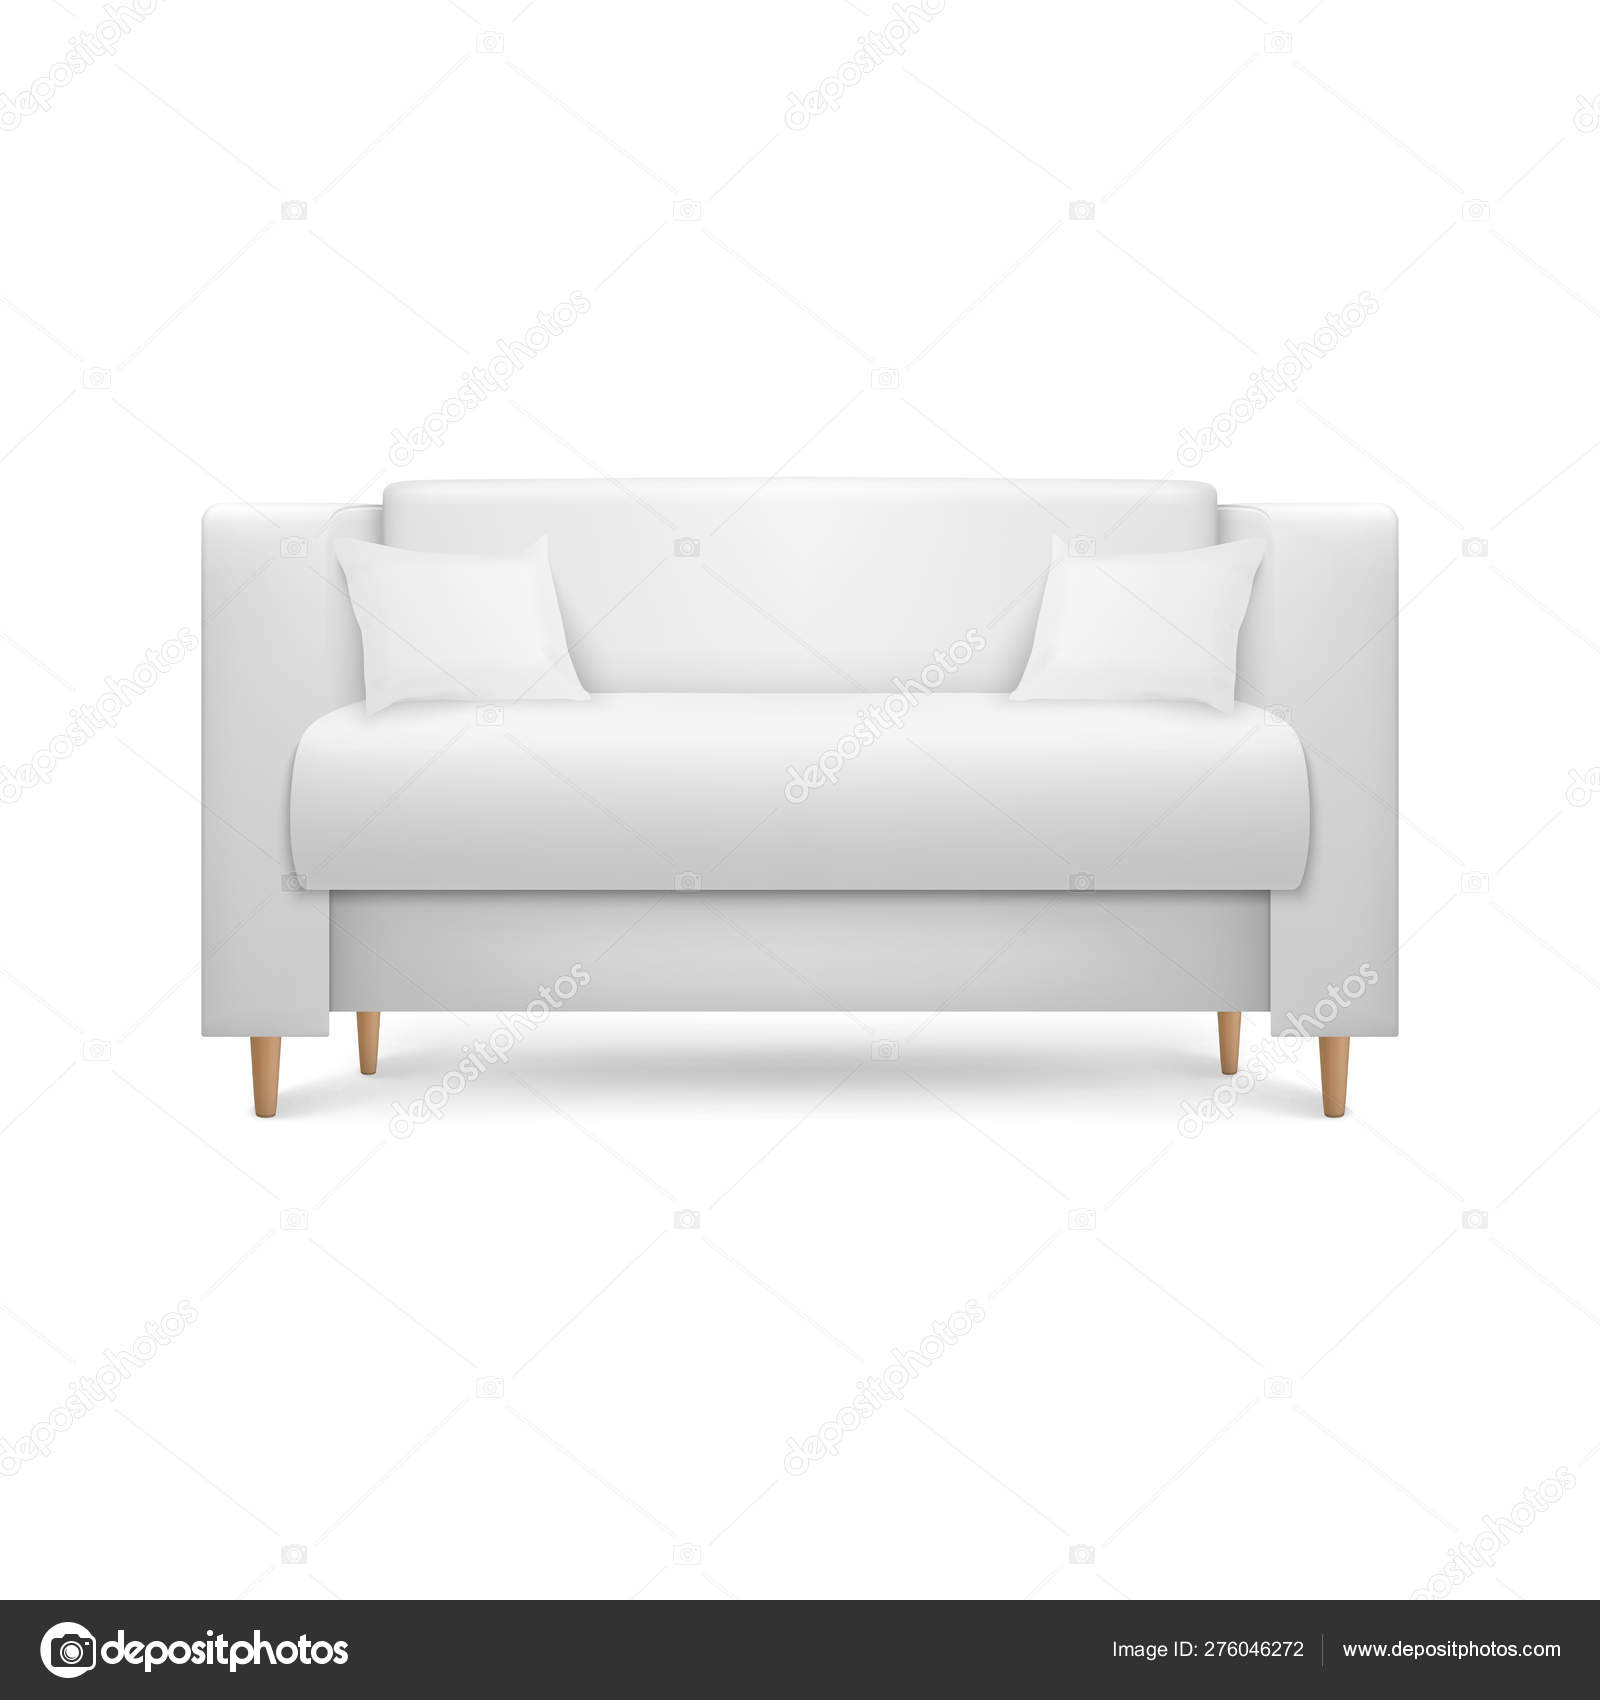 Vector 3d Realistic Render White Leather Luxury Office Sofa